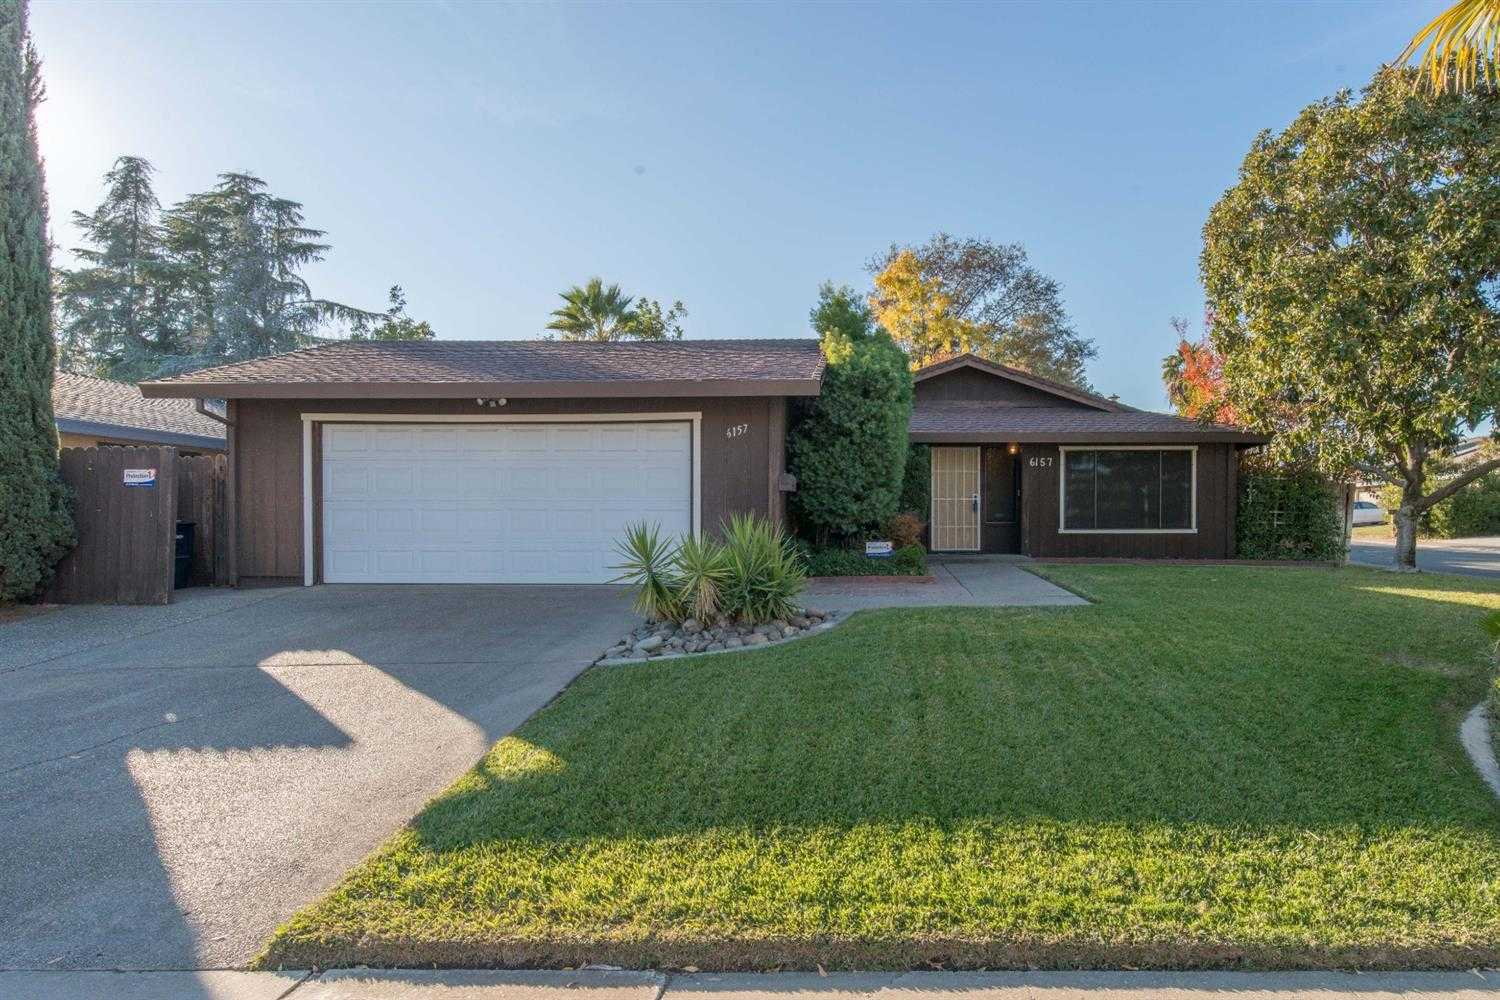 $399,000 - 3Br/2Ba -  for Sale in Citrus Heights